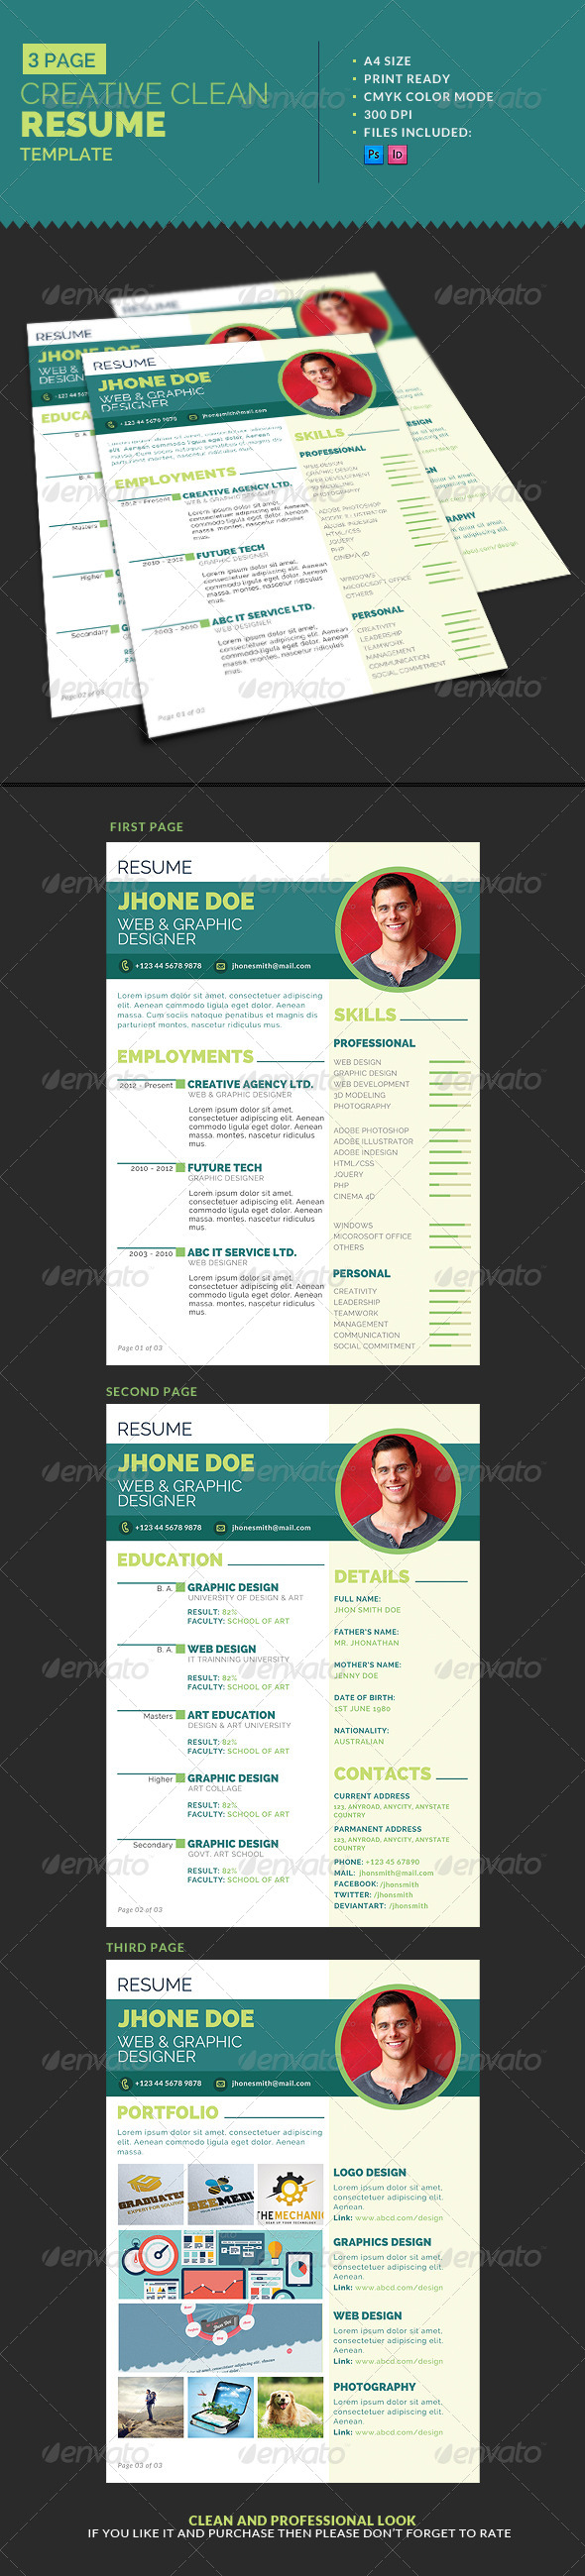 GraphicRiver 3-Page Creative Clean Resume Template 7760956